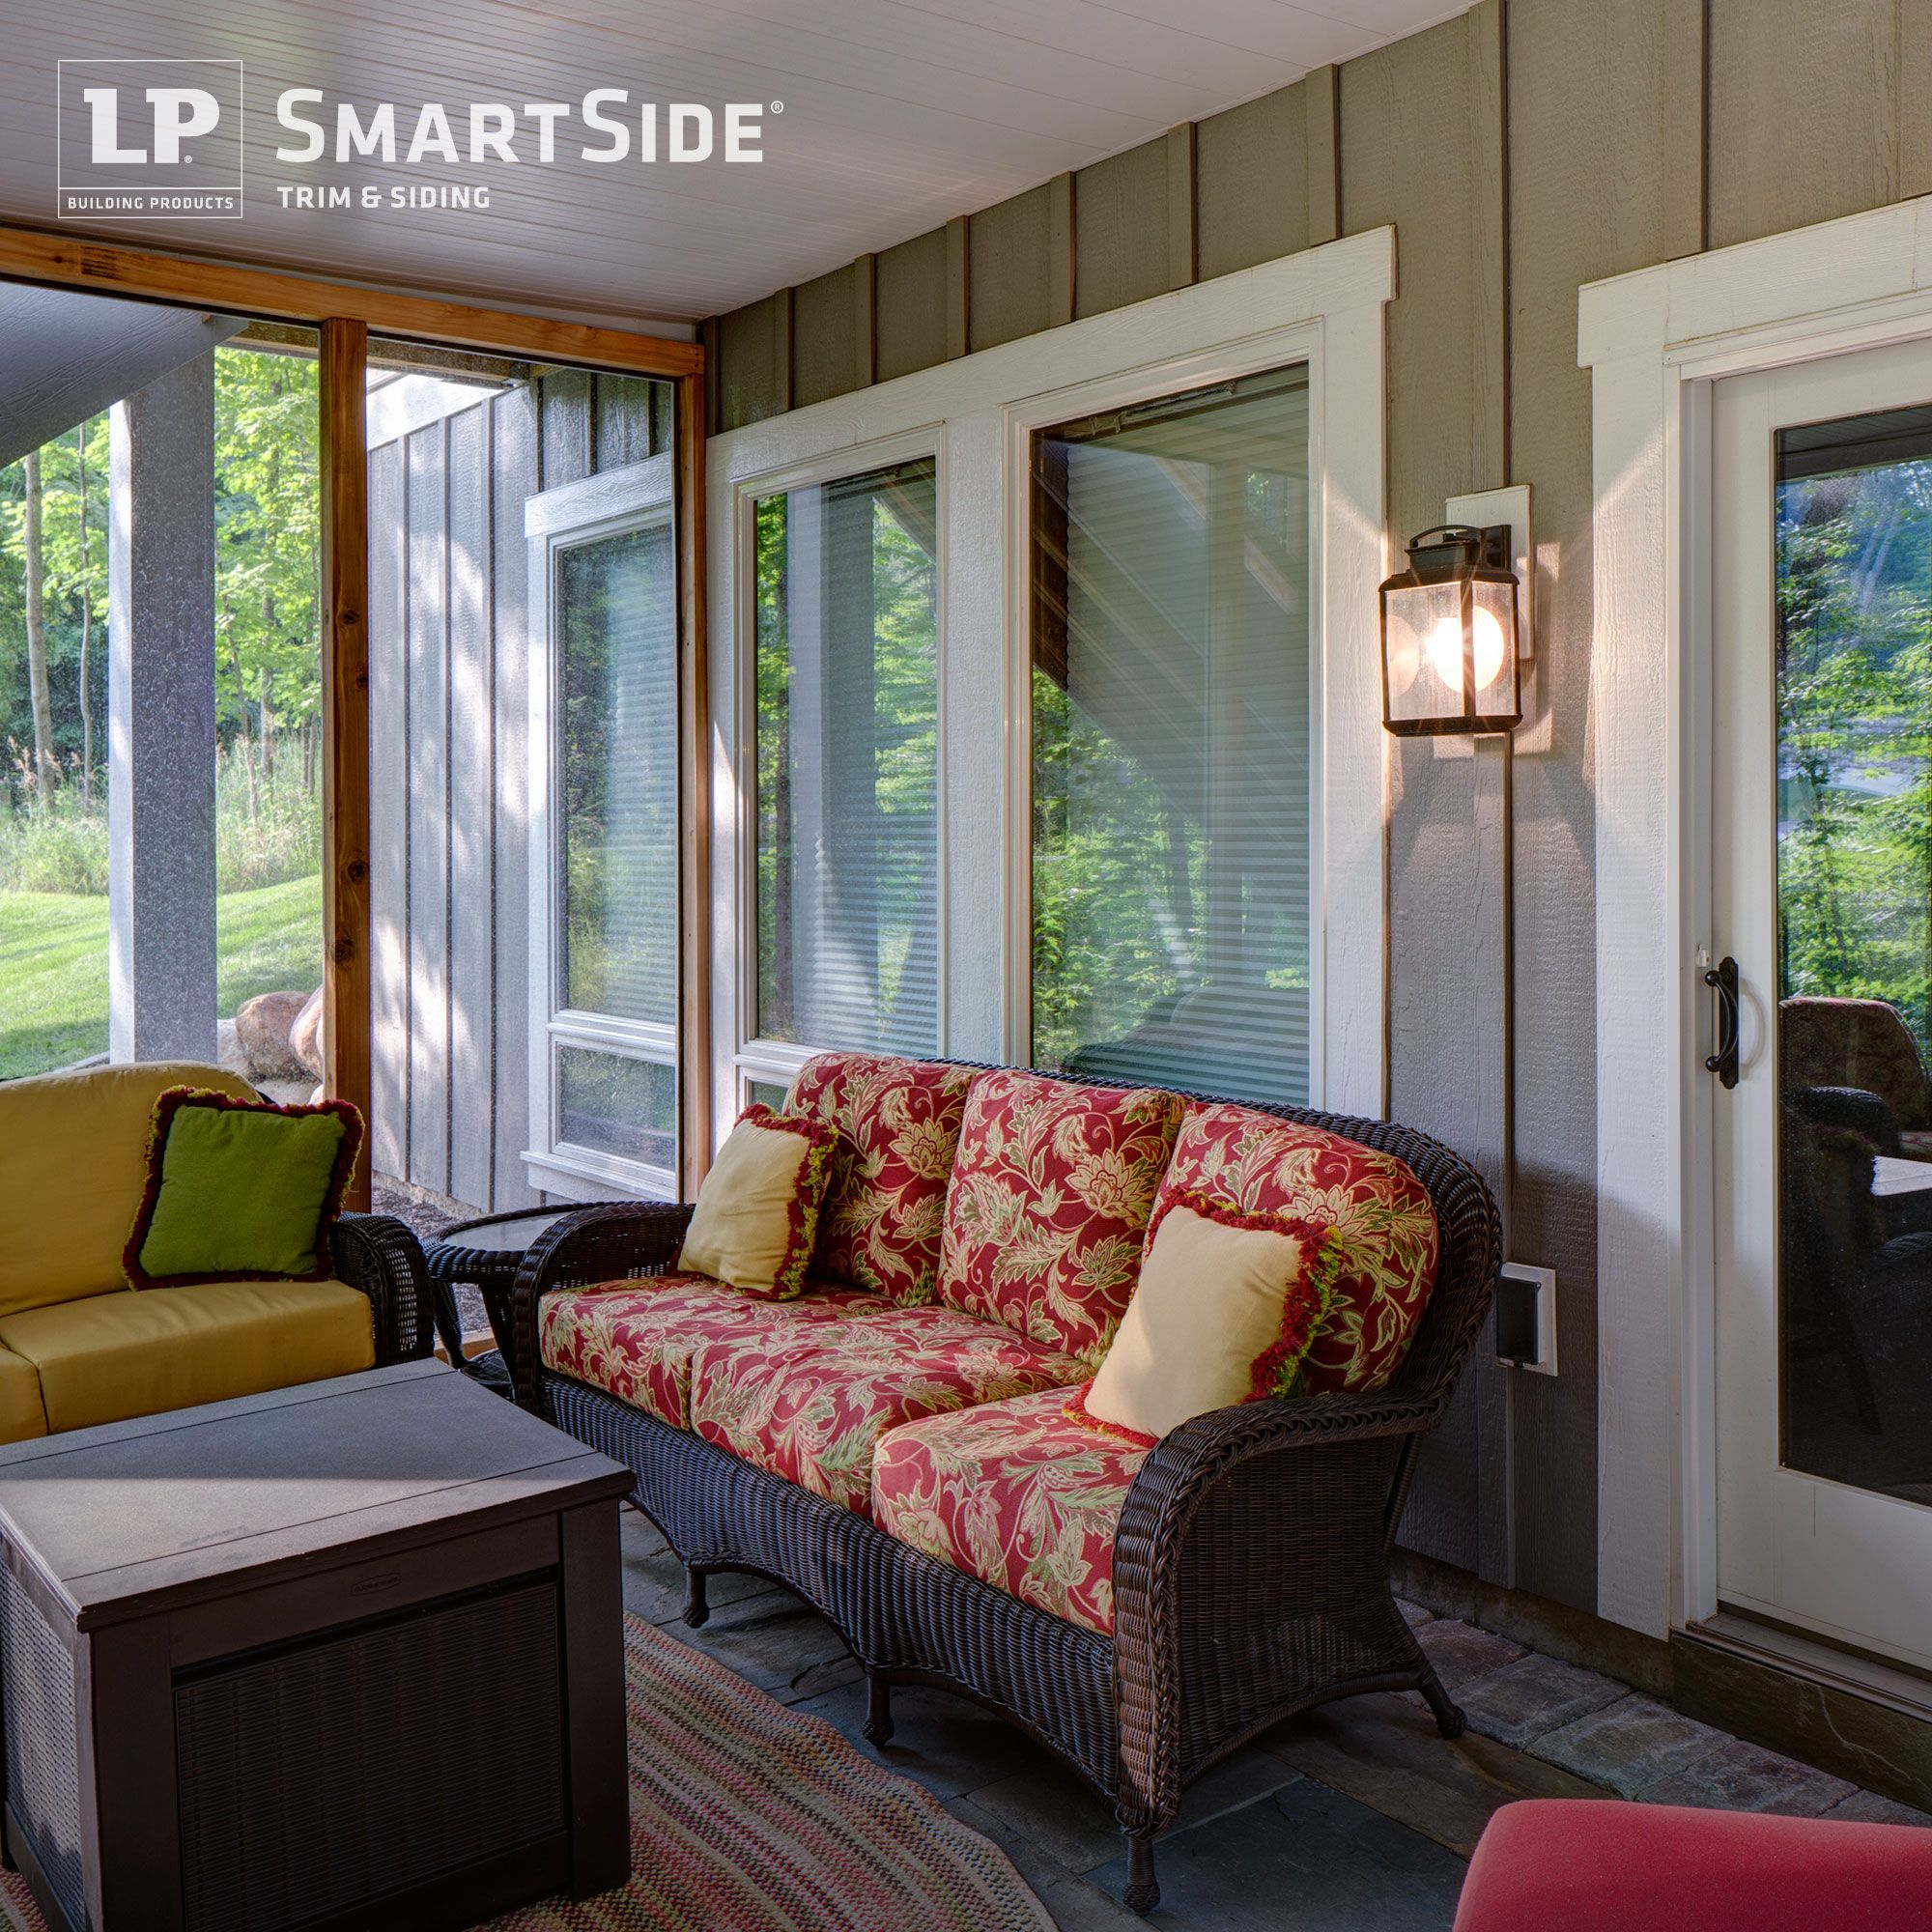 Bring Exterior Details Inside A Screened In Porch Featuring Lp Smartside Trim And Panel Siding